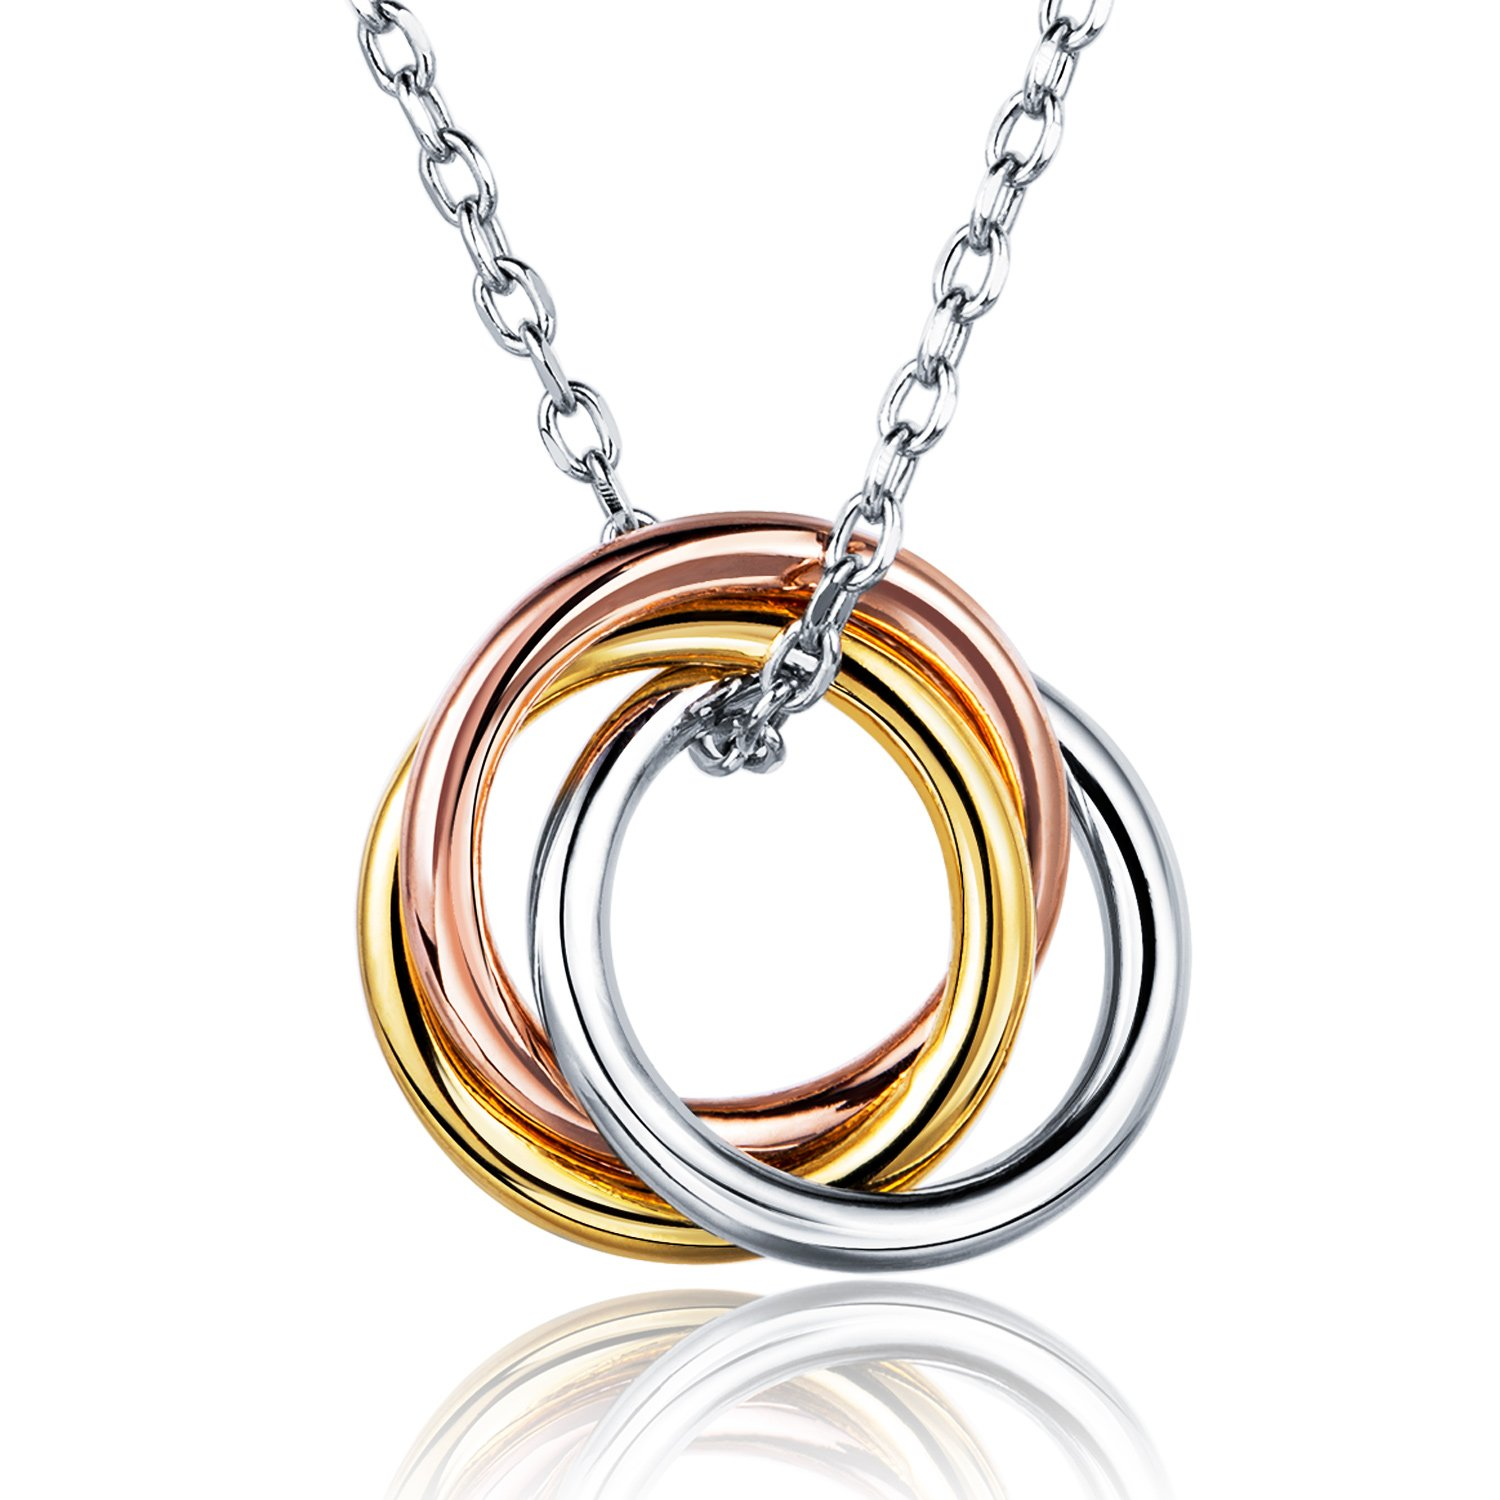 Billie Bijoux 925 Sterling Silver Russian Ring Infinity Love Circle Pendant Necklace White Gold Plated Women Necklace Best Gift 18''